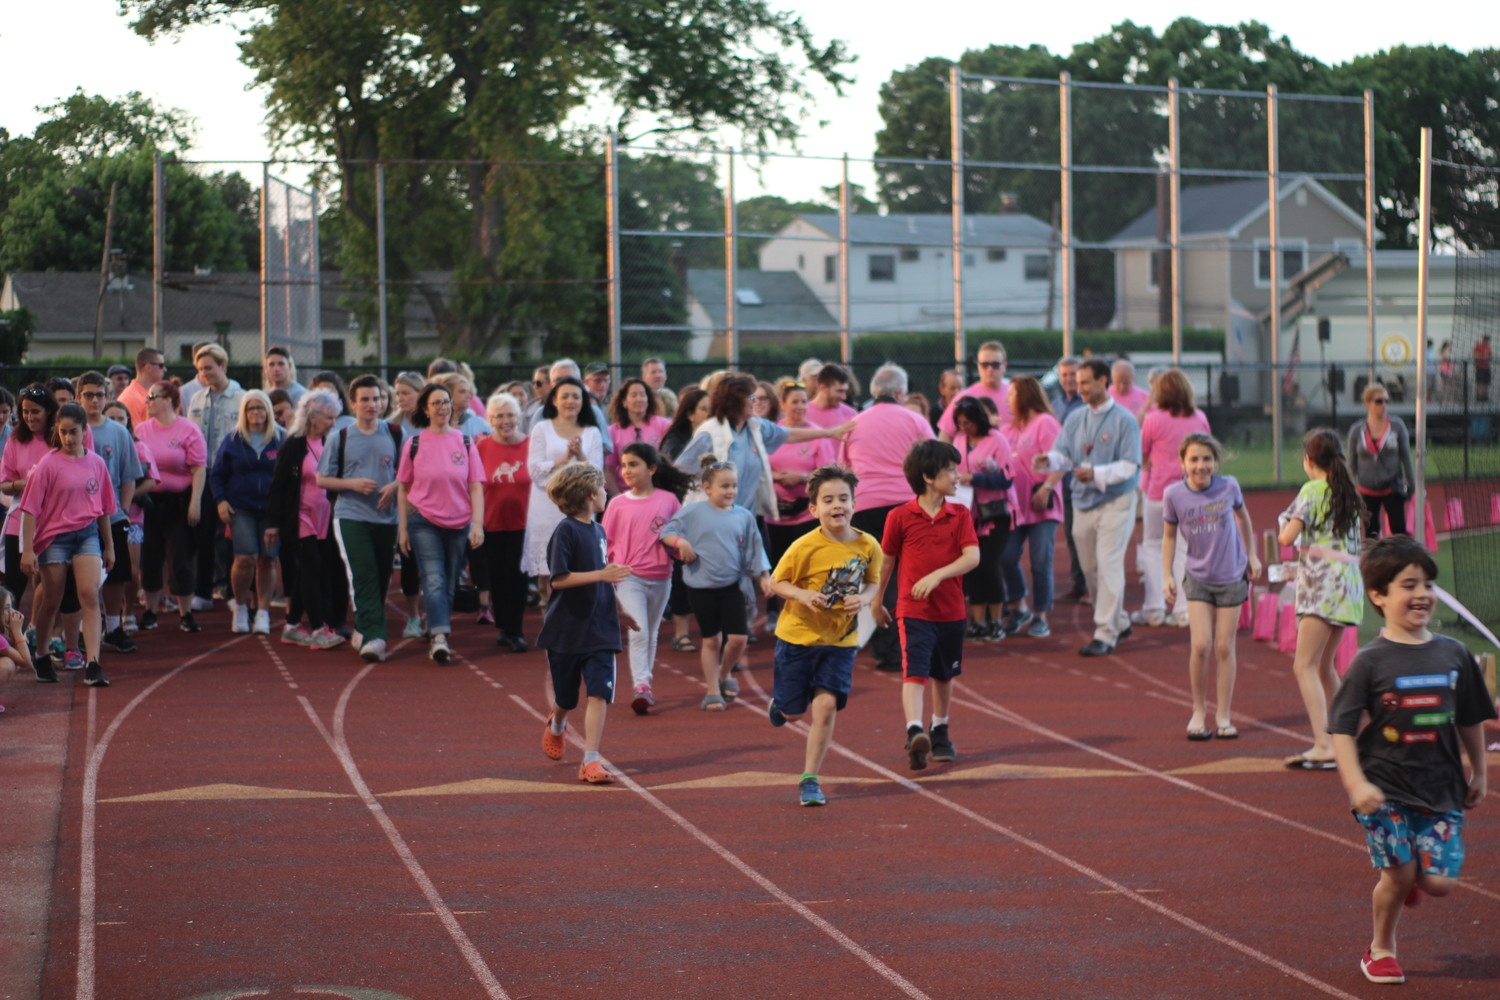 The Walk of Lights fundraiser for the Satriano cancer foundation